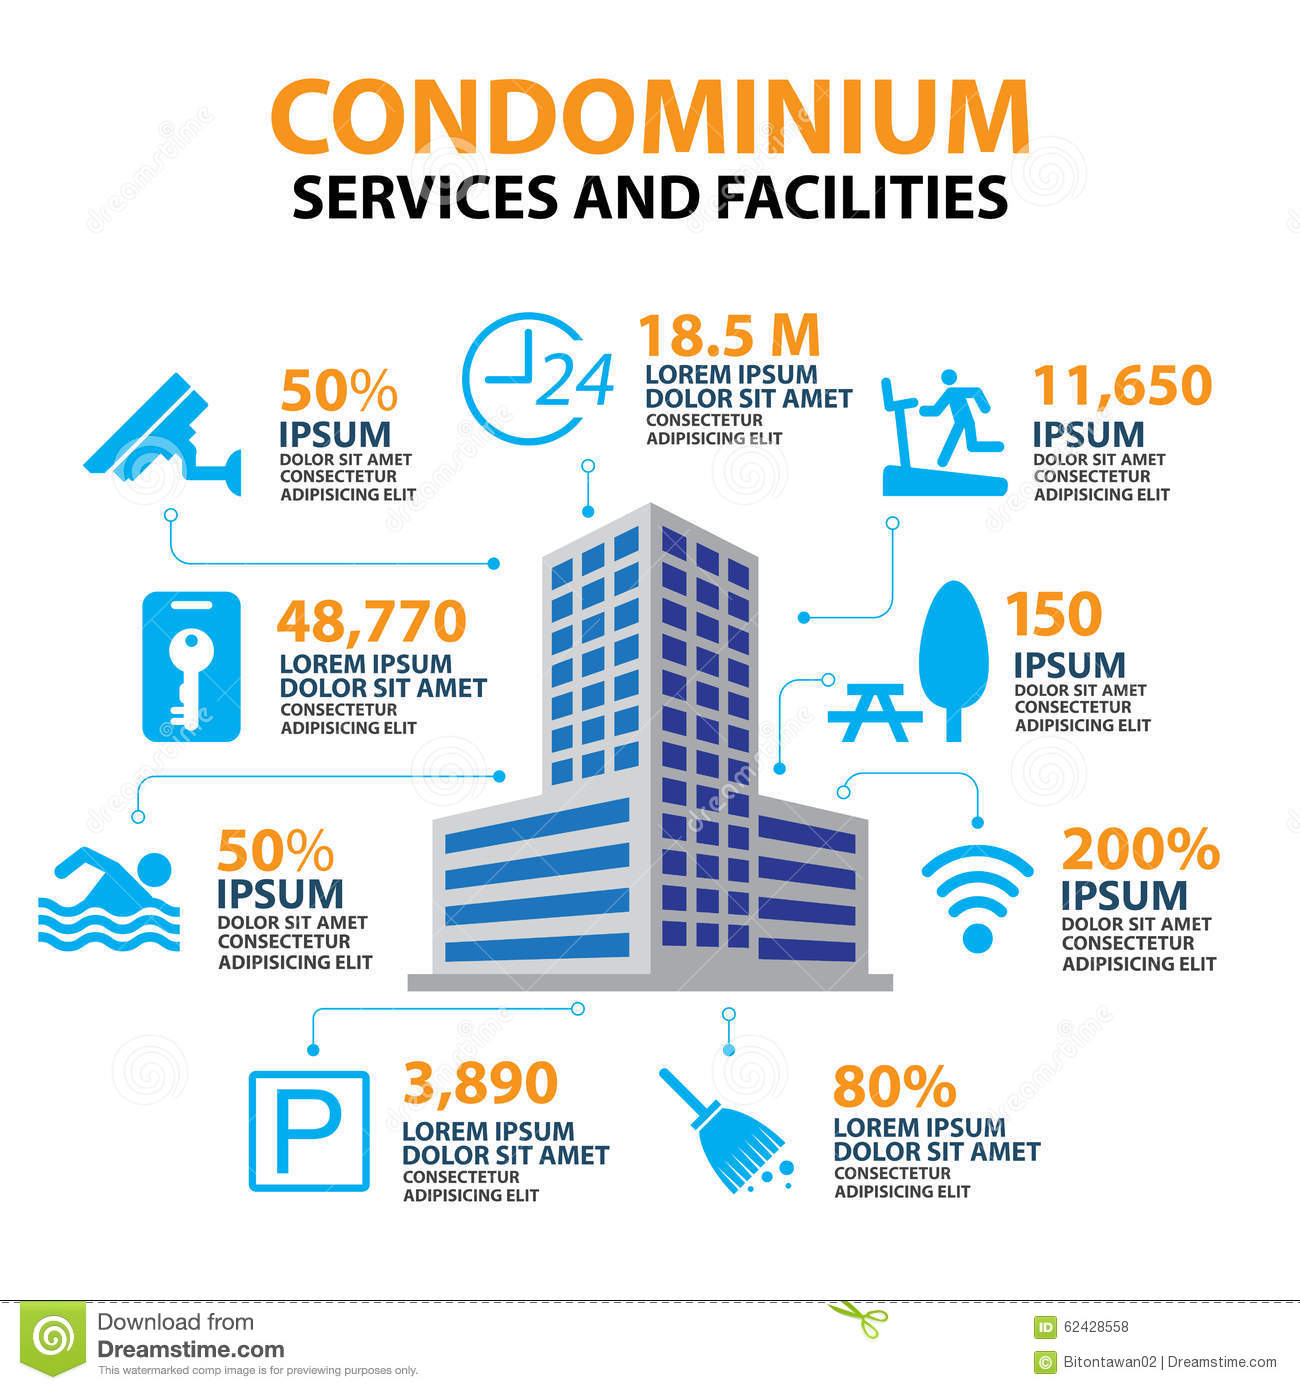 Hotel Condominium And Home Services Facilities Icon